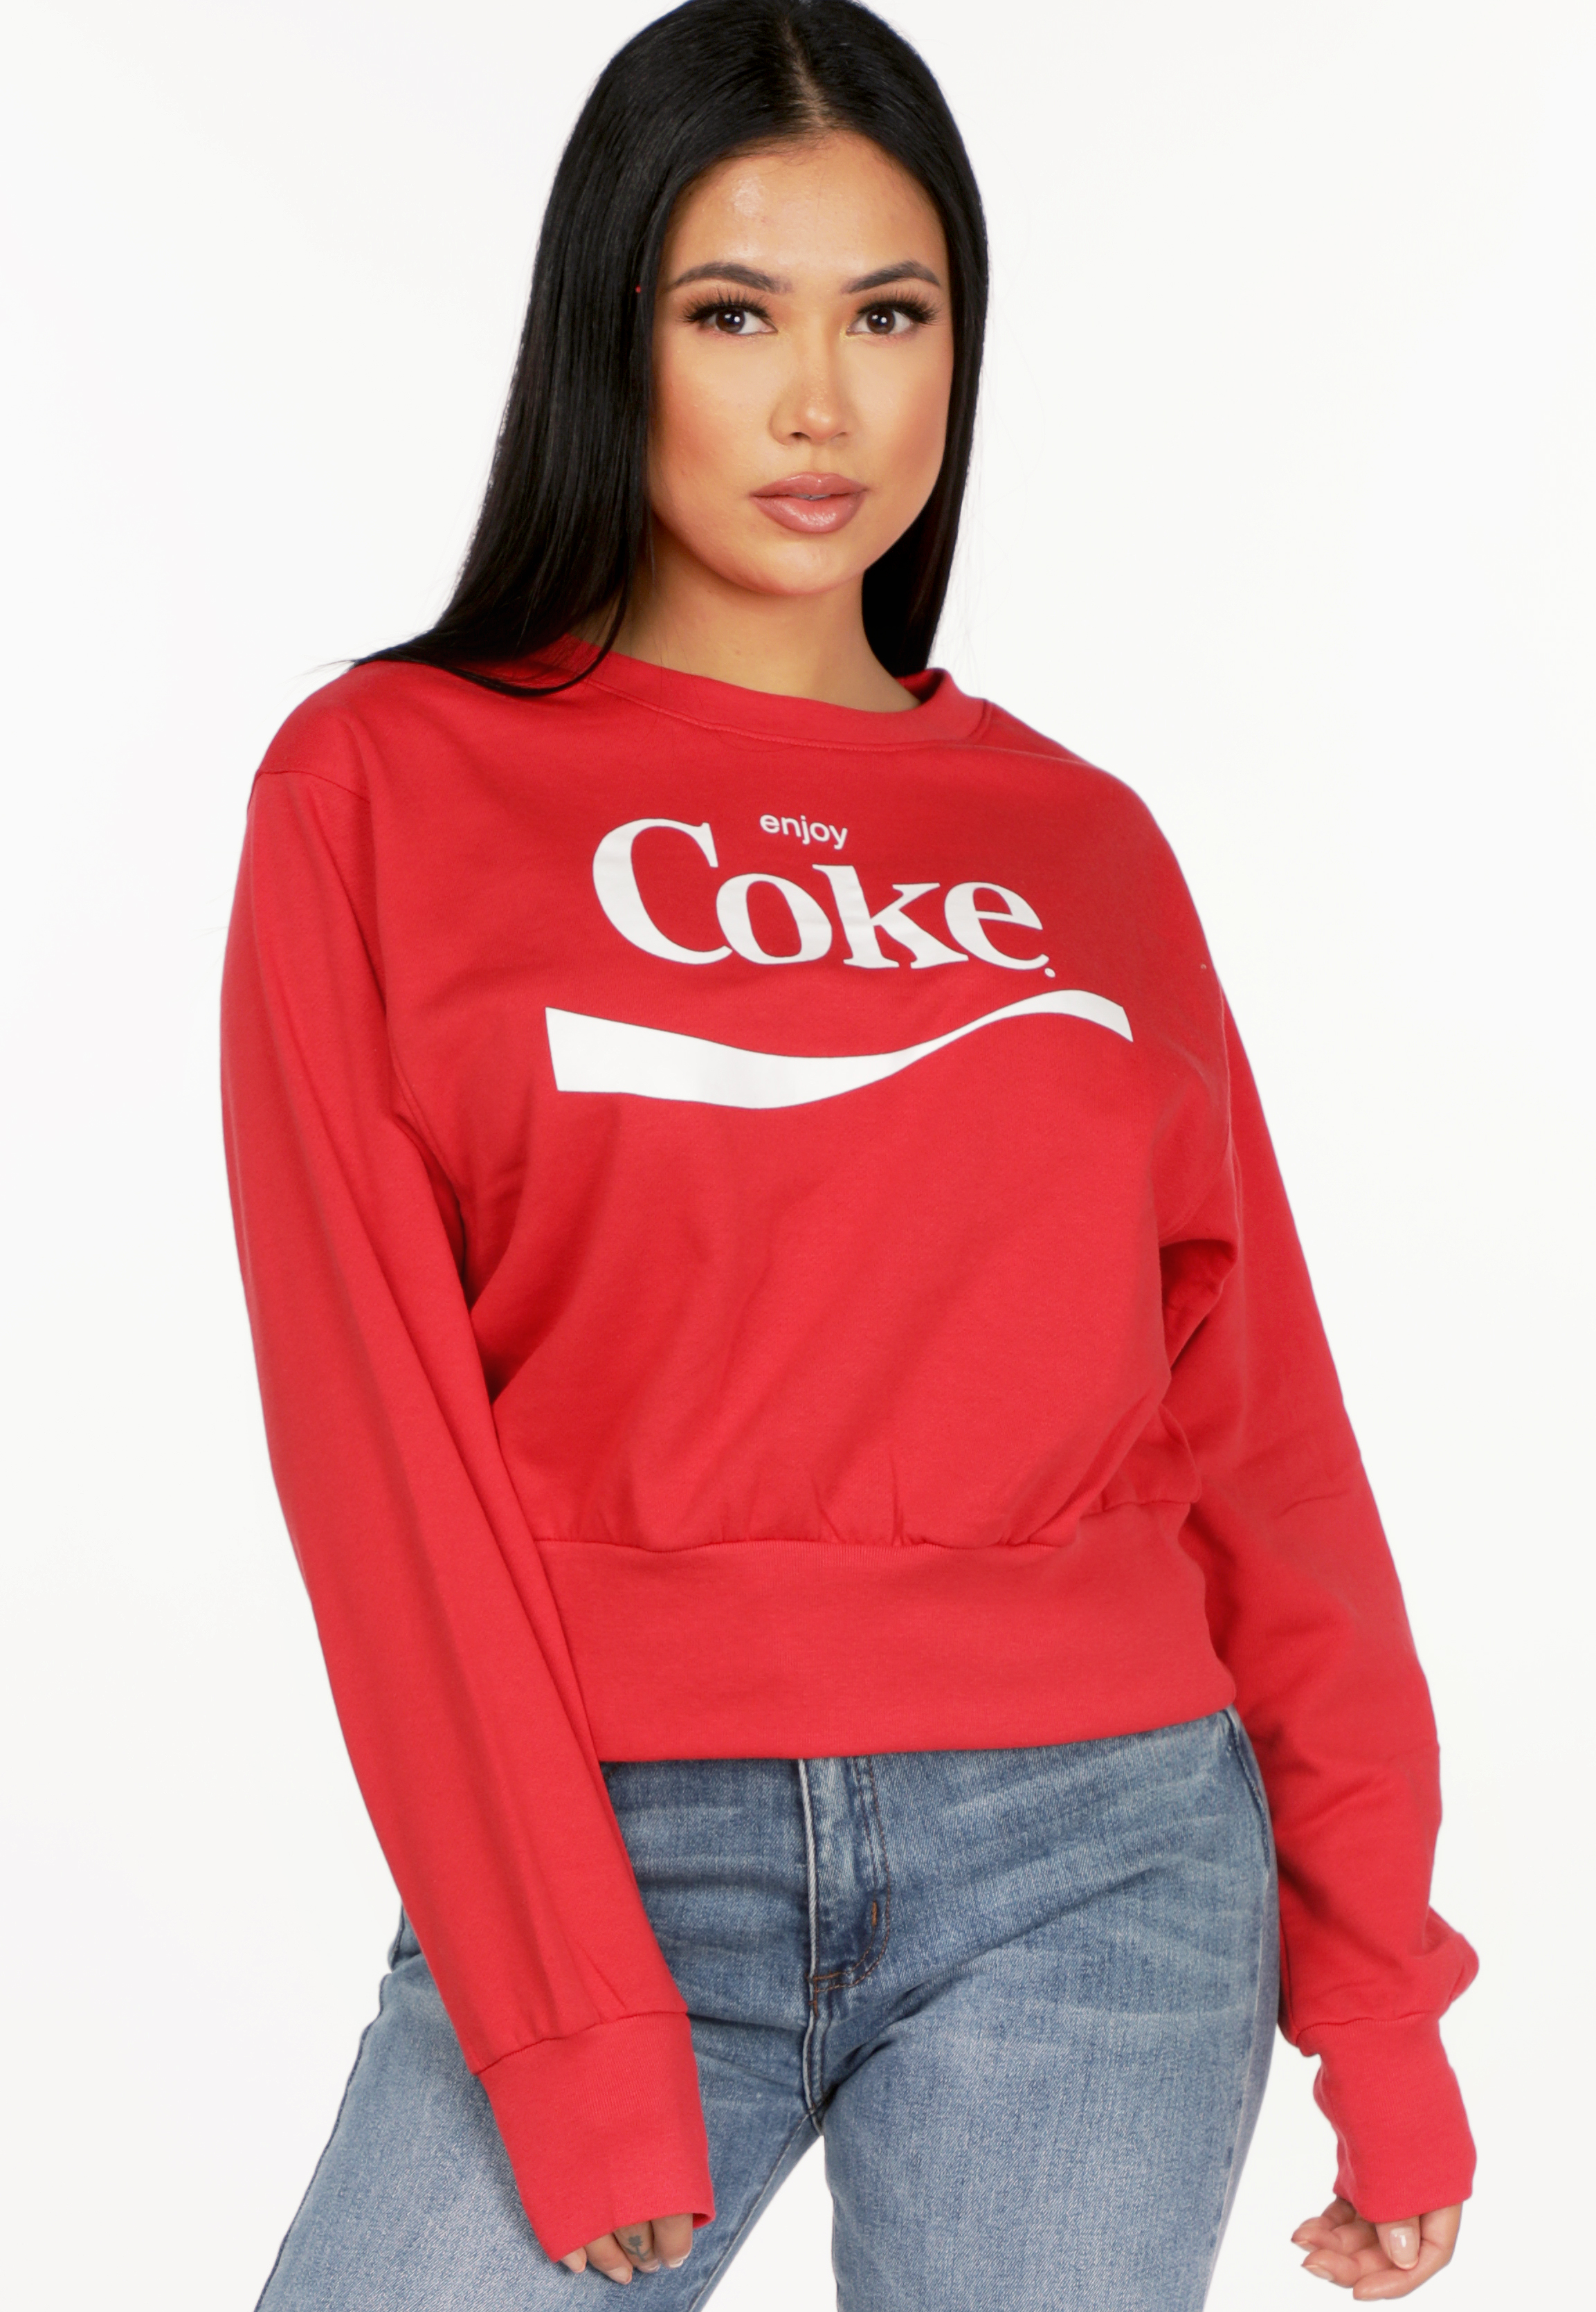 Coke Graphic Sweater